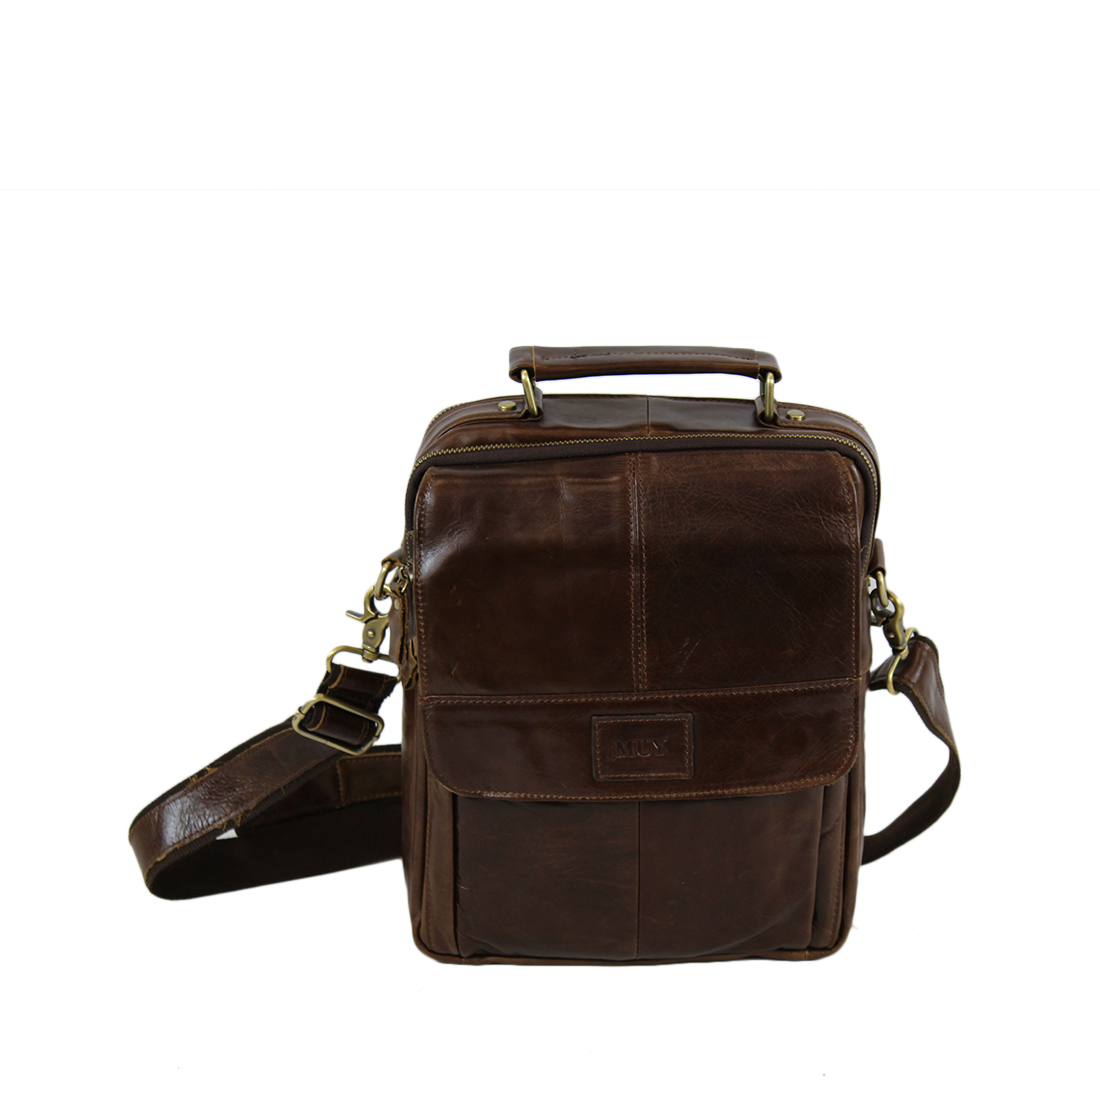 Old school real leather briefcase with pockets on front